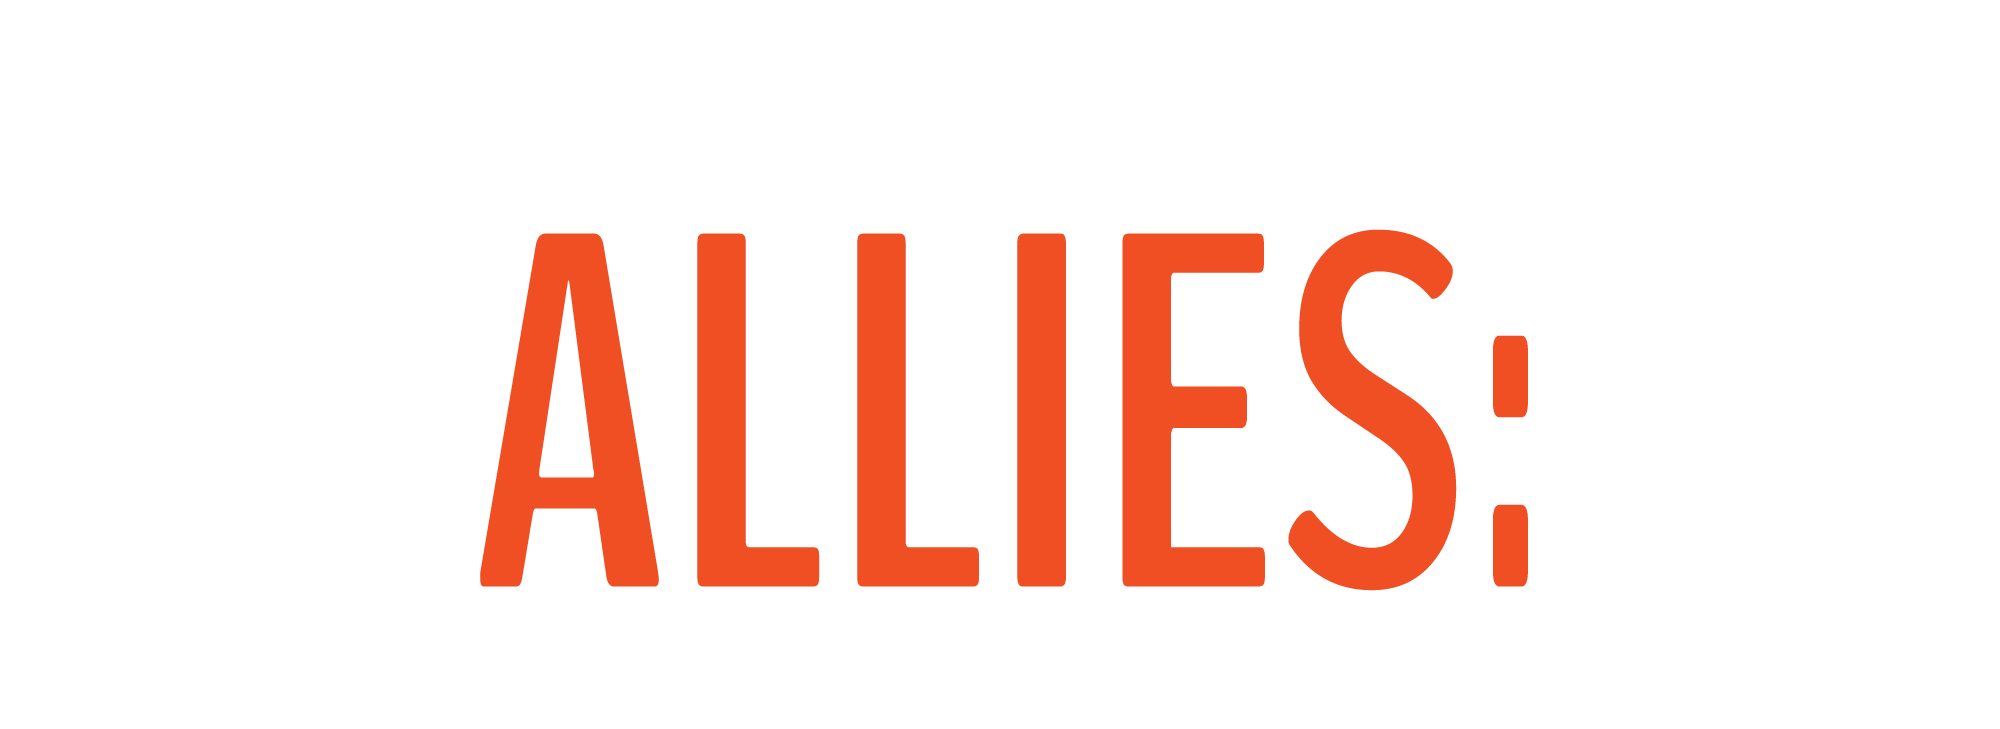 ALLIES-TEXT.png